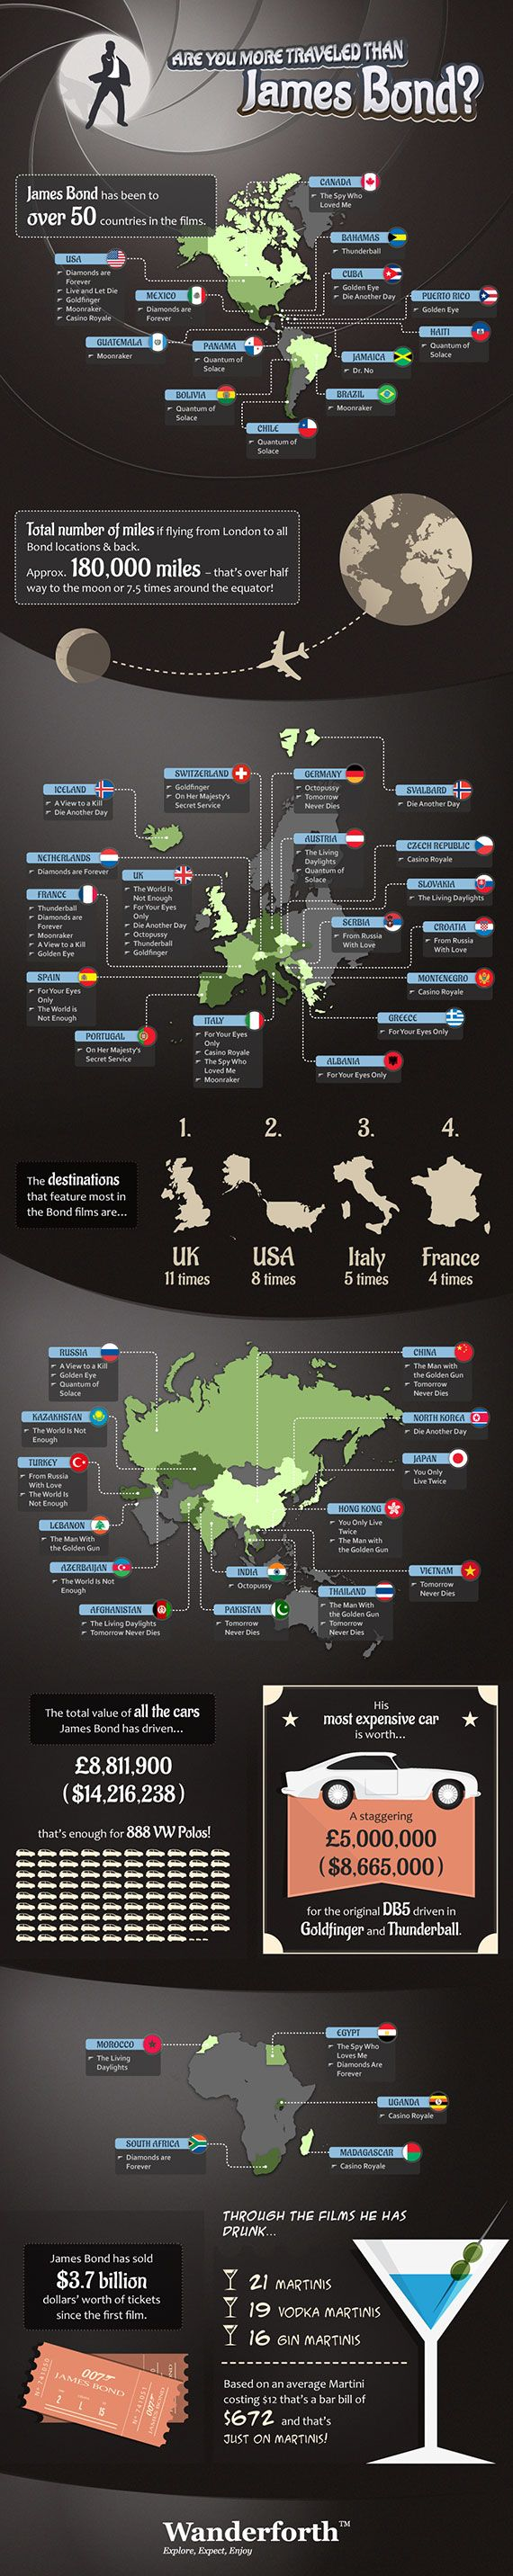 Are You More Traveled Than James Bond? @ Pinfographics #travel